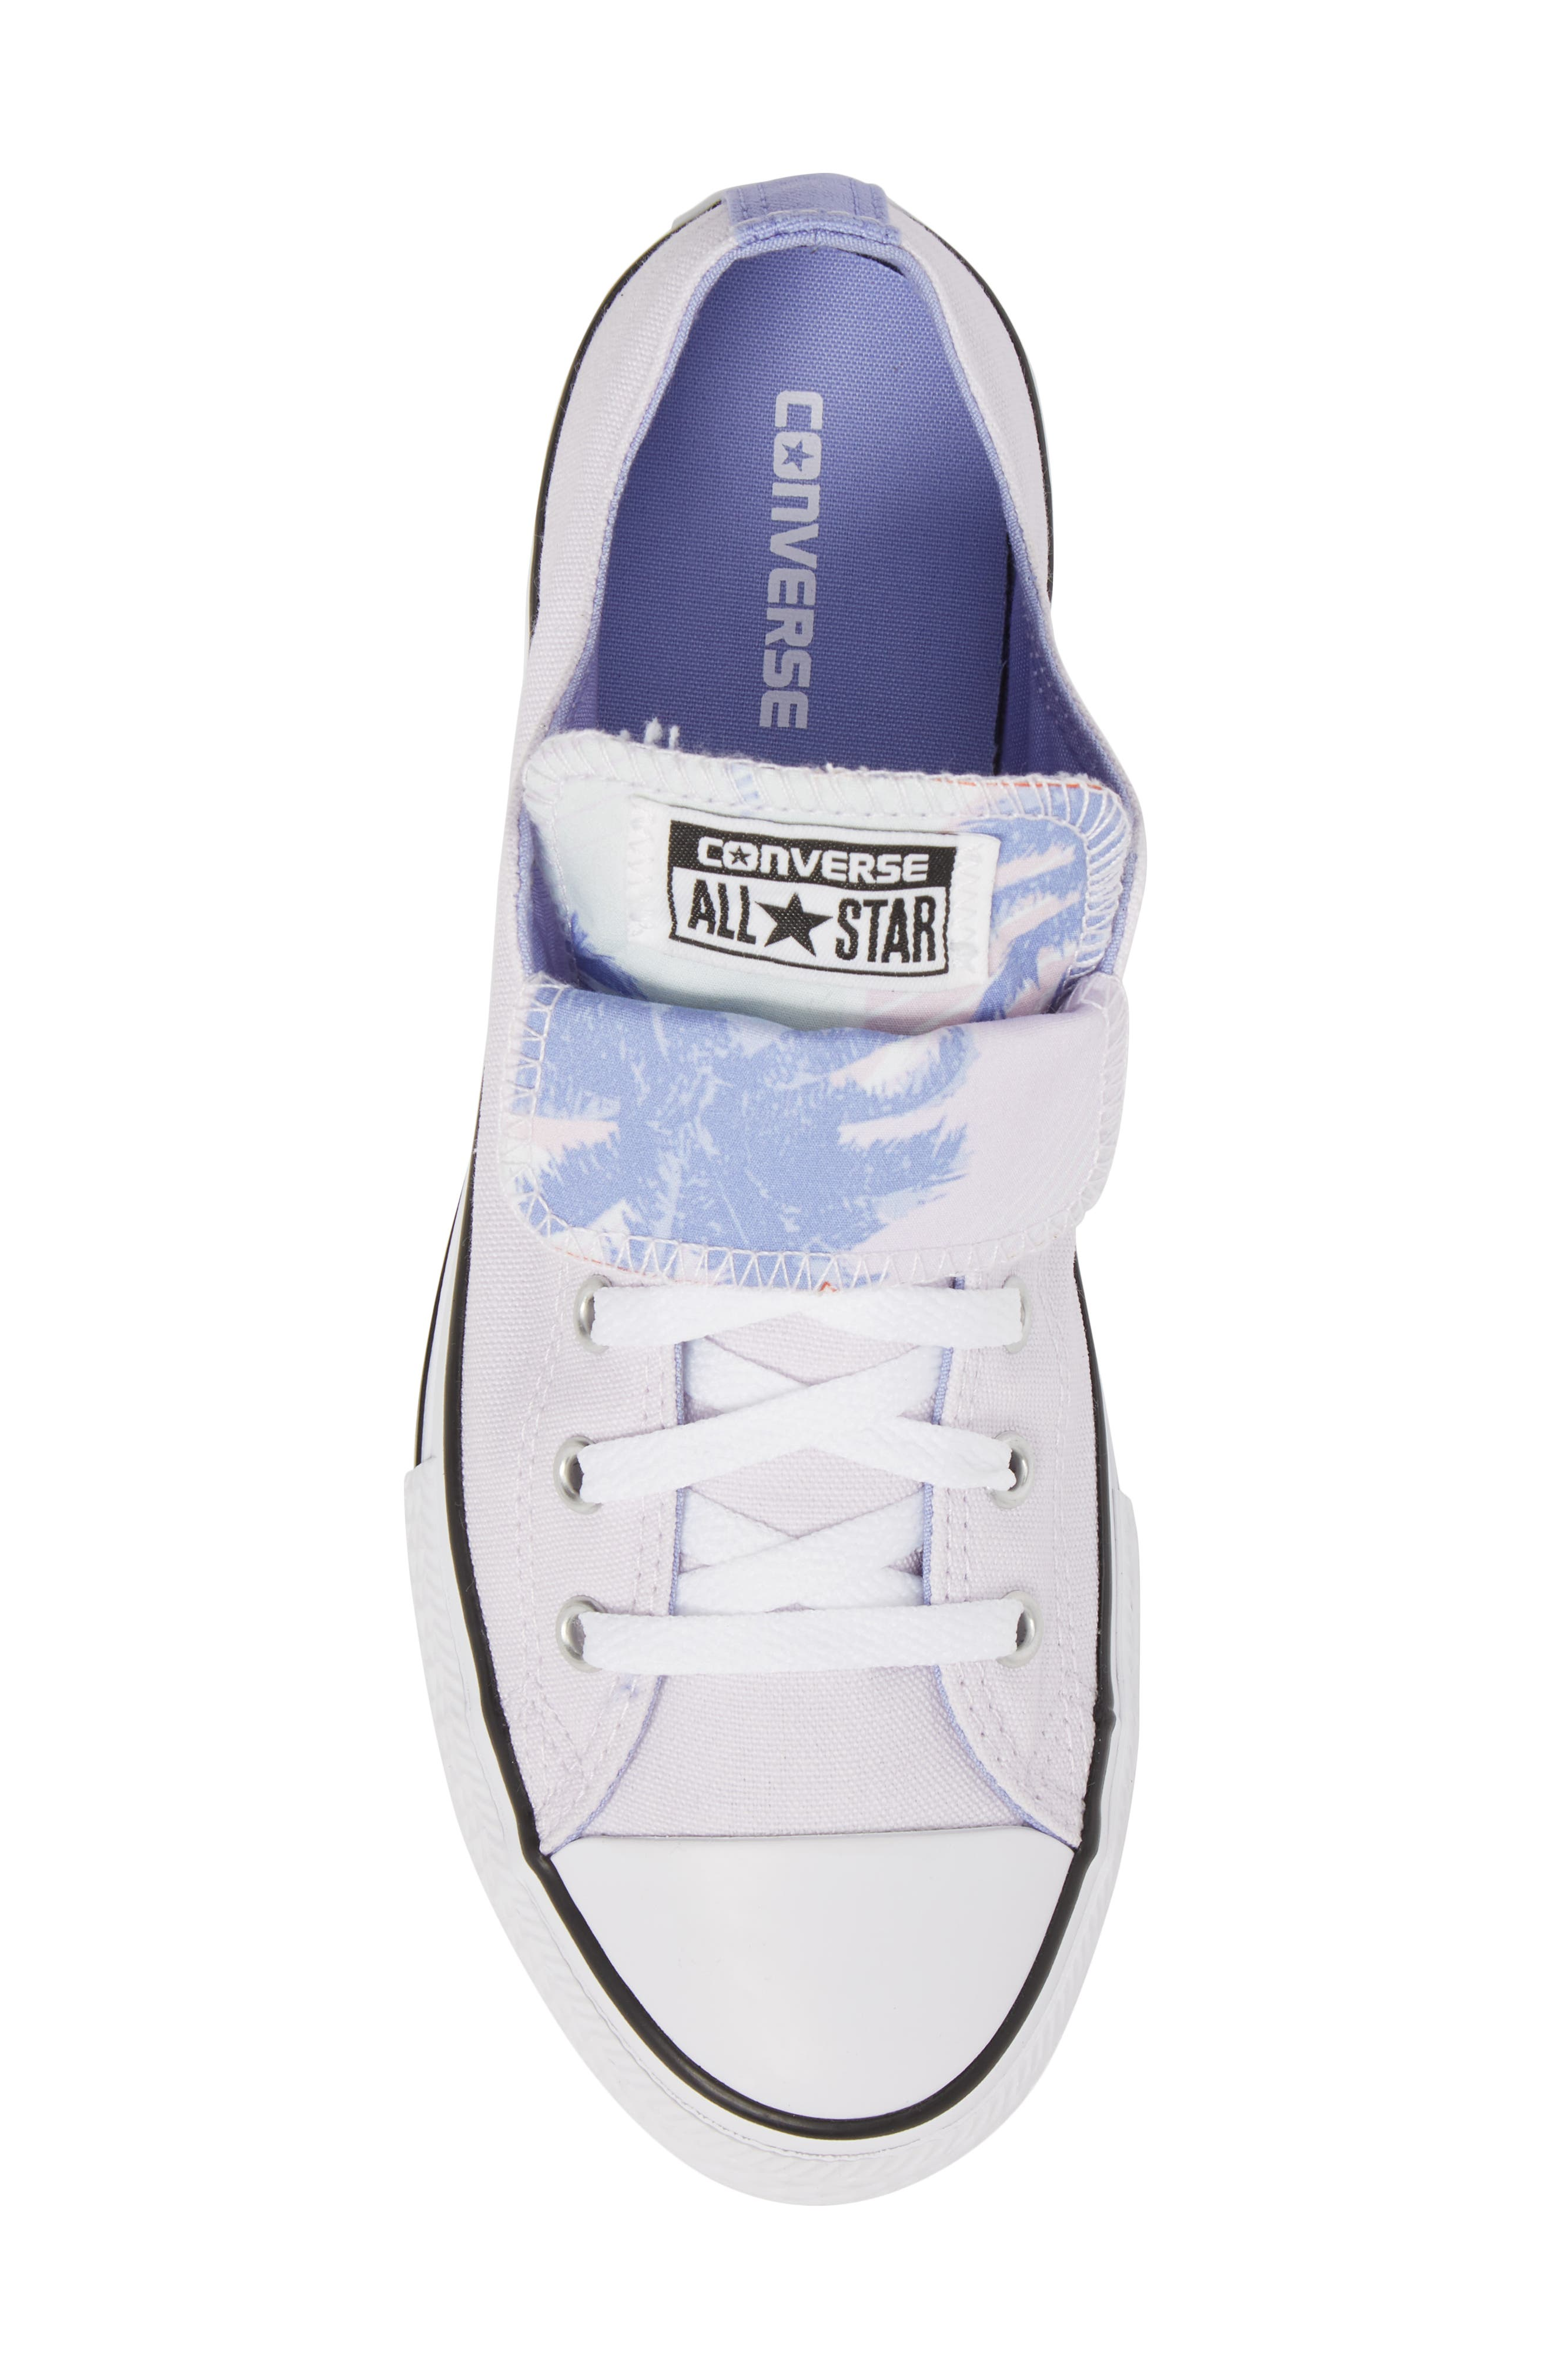 Chuck Taylor<sup>®</sup> All Star<sup>®</sup> Palm Tree Double Tongue Low Top Sneaker,                             Alternate thumbnail 5, color,                             Barely Grape